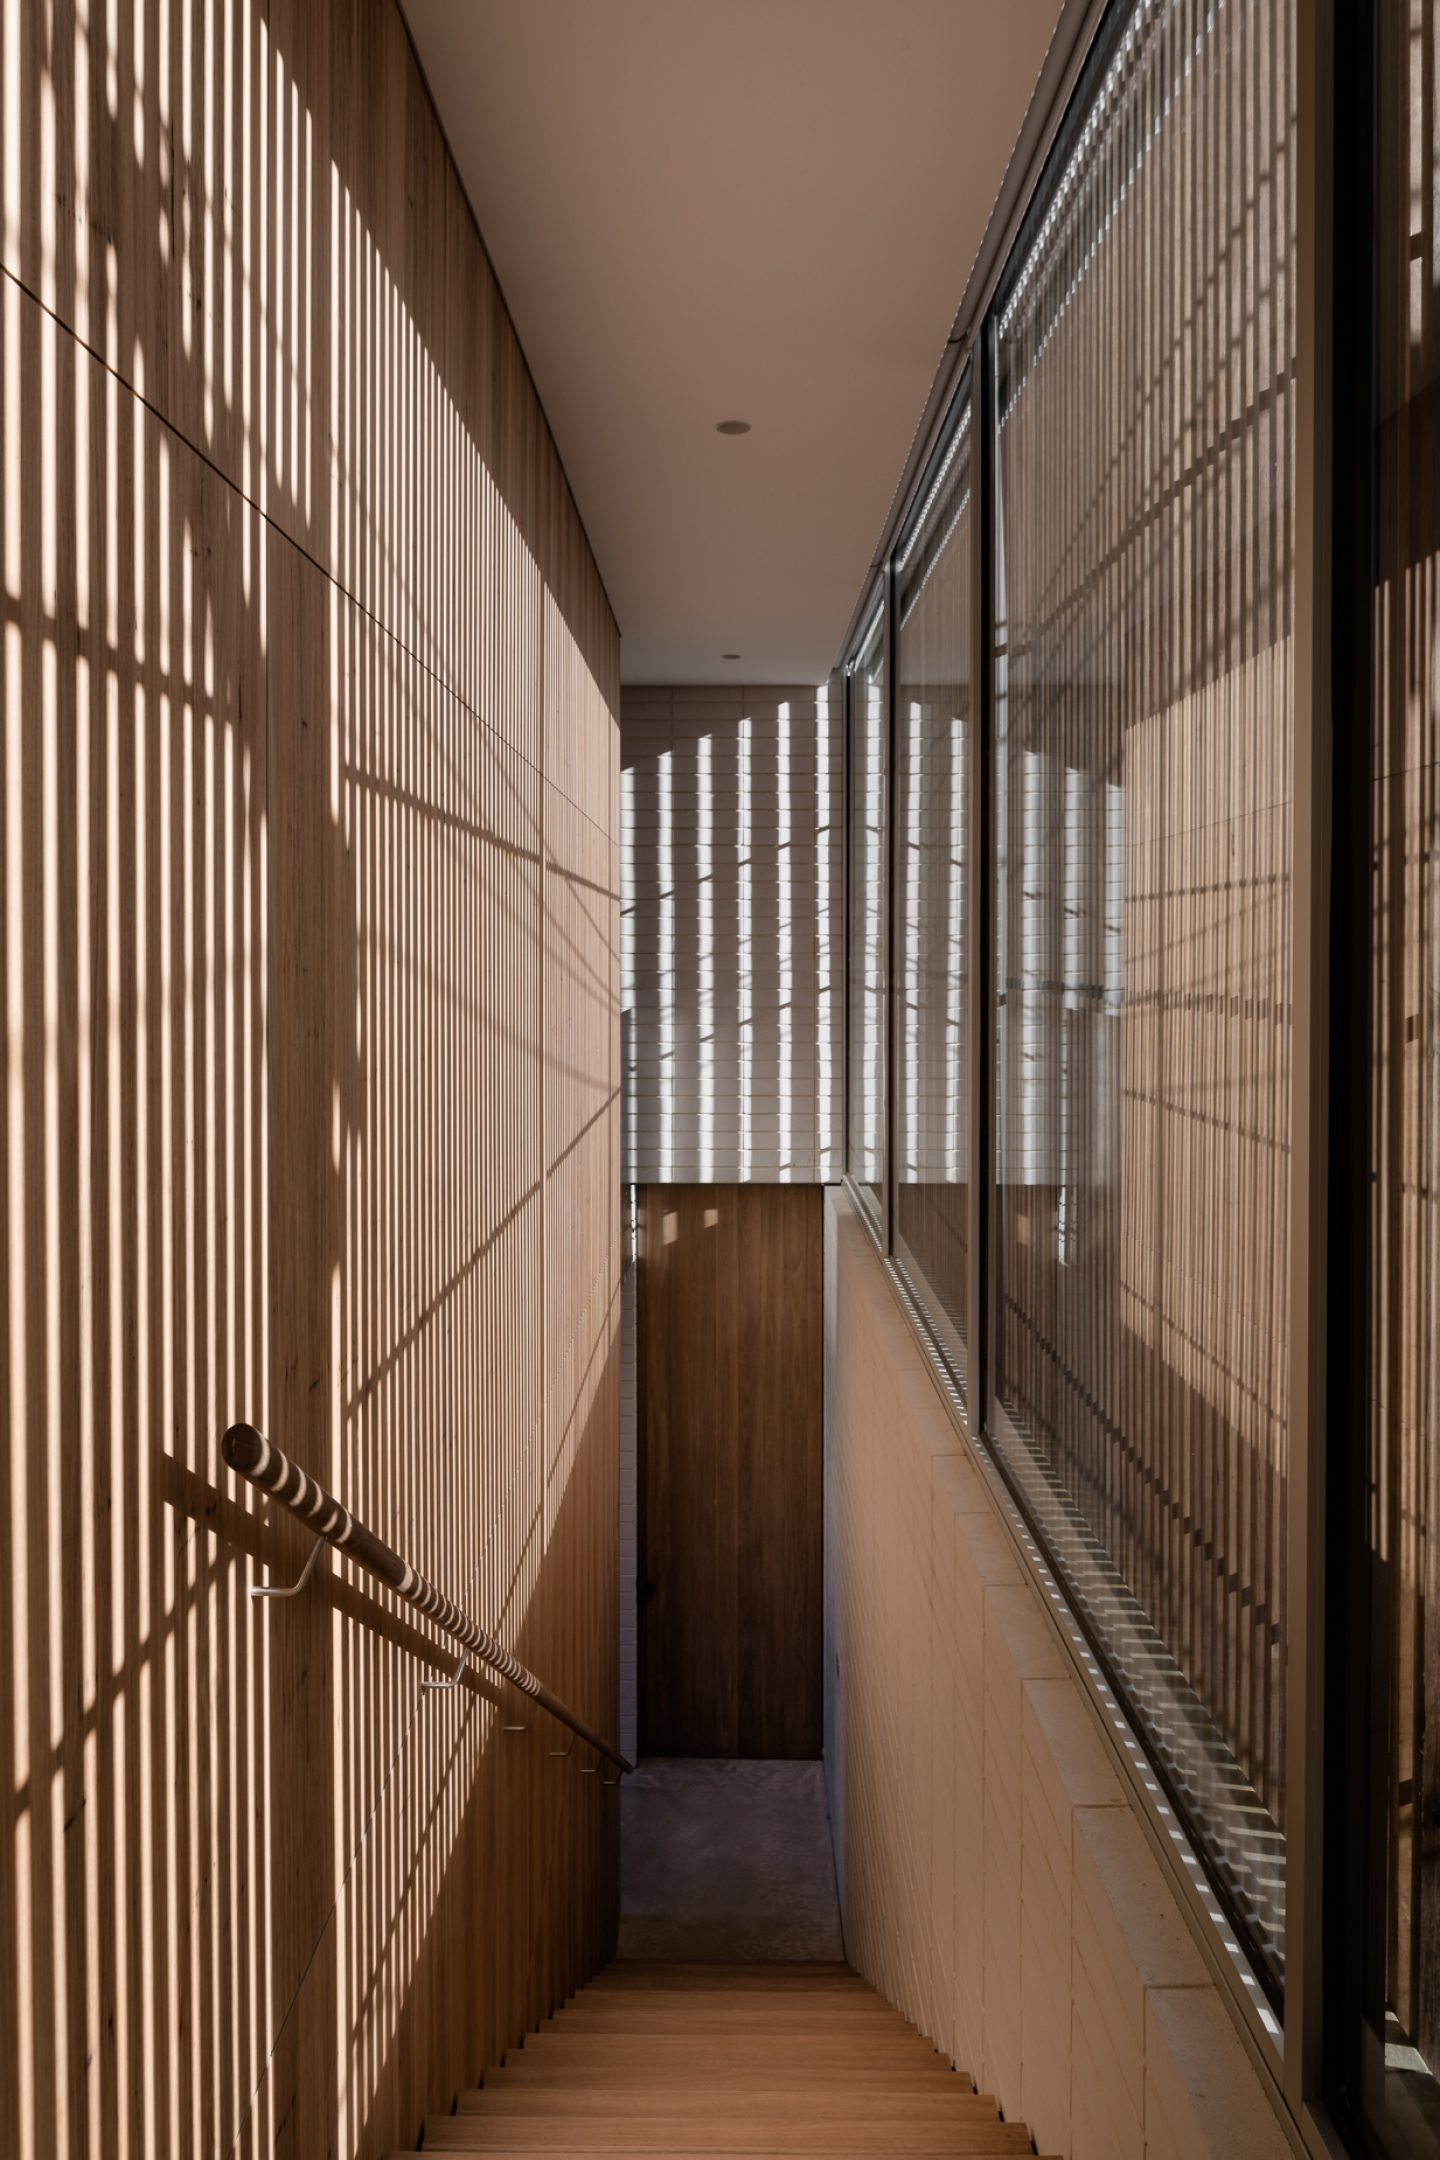 IGNANT-Architecture-Ritz-Ghougassian-Edsall-Street-012